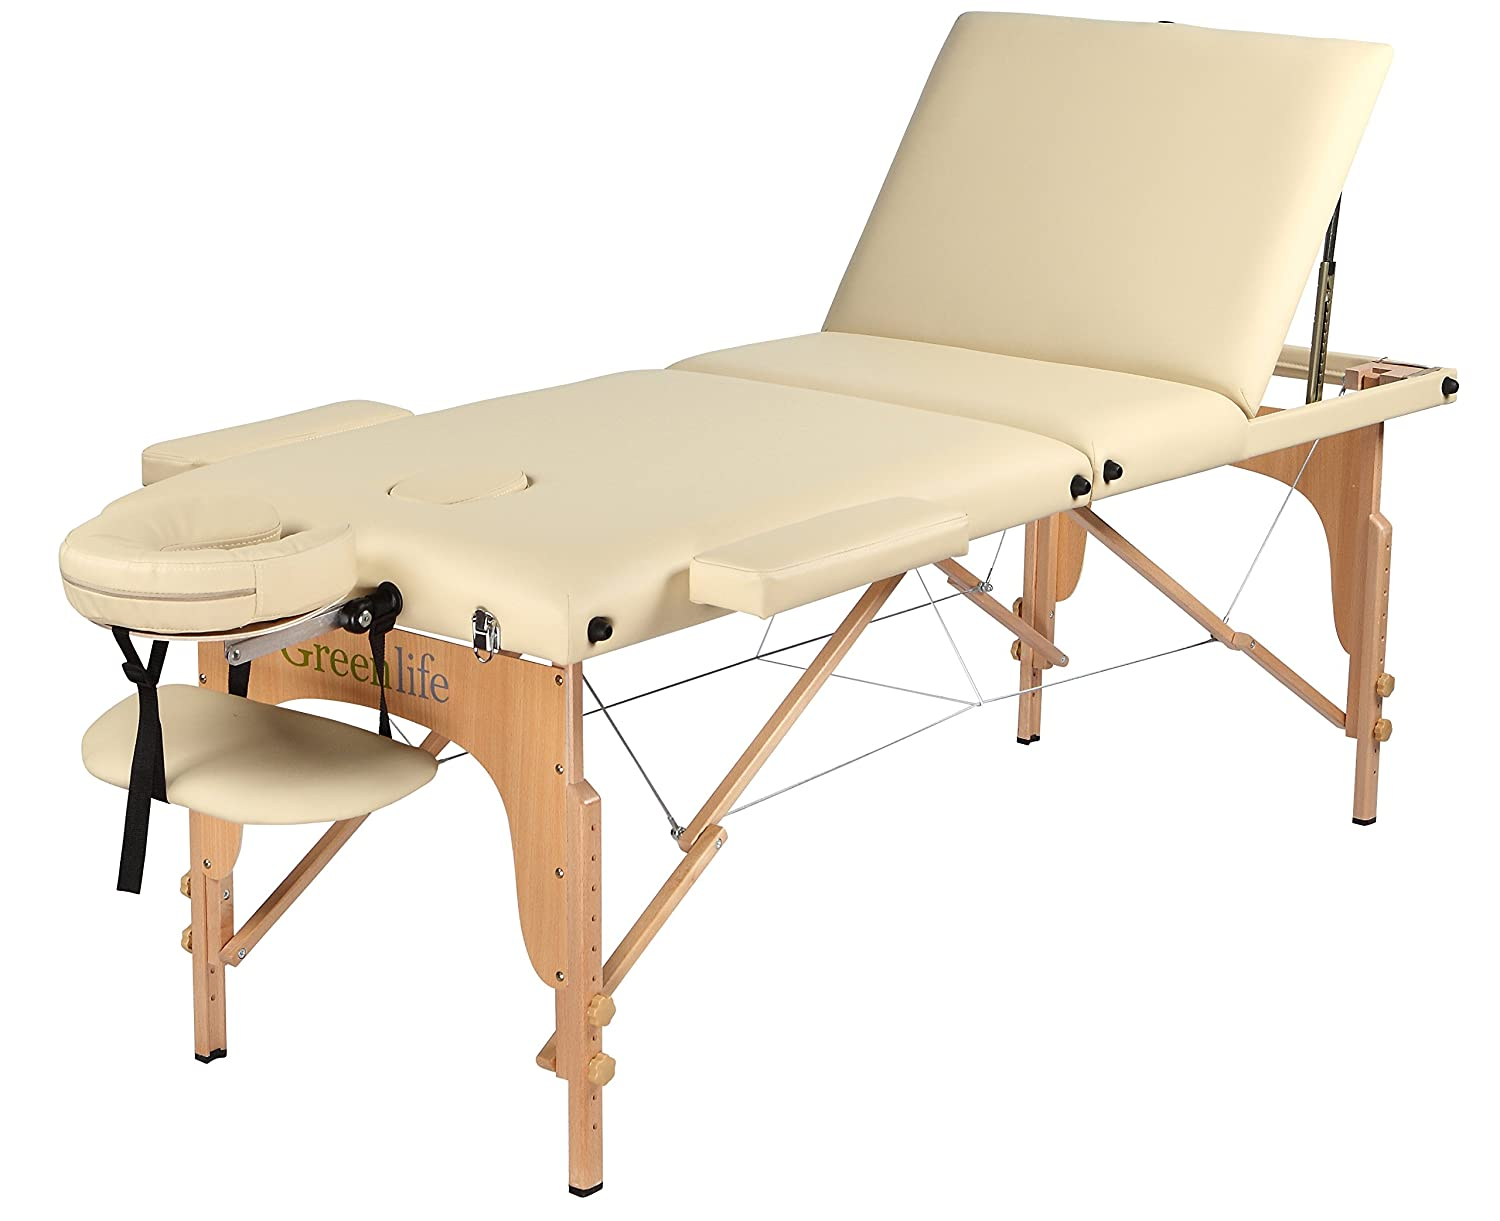 Portable Wooden 3 Fold Massage 3'' or 4' Padding Table Spa Tattoo Reiki Facial Height Adjustable (cream 3''padding) GreenLife